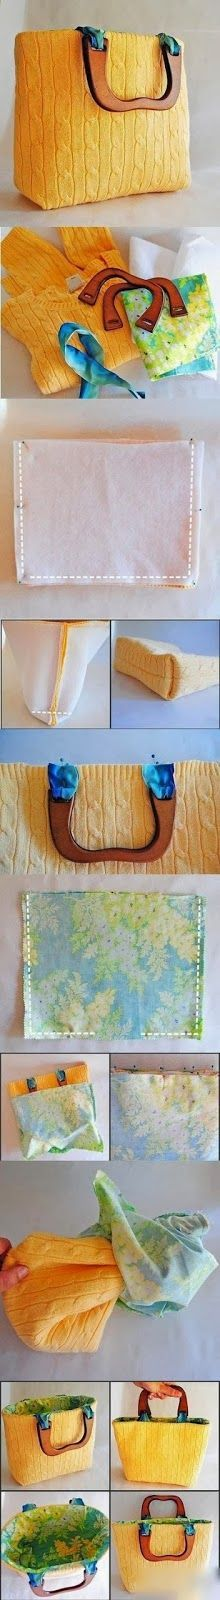 How To Make a bag from old sweater  By using your own  sweater you can make a new bag. Just find some cloth for the inner side  of the...